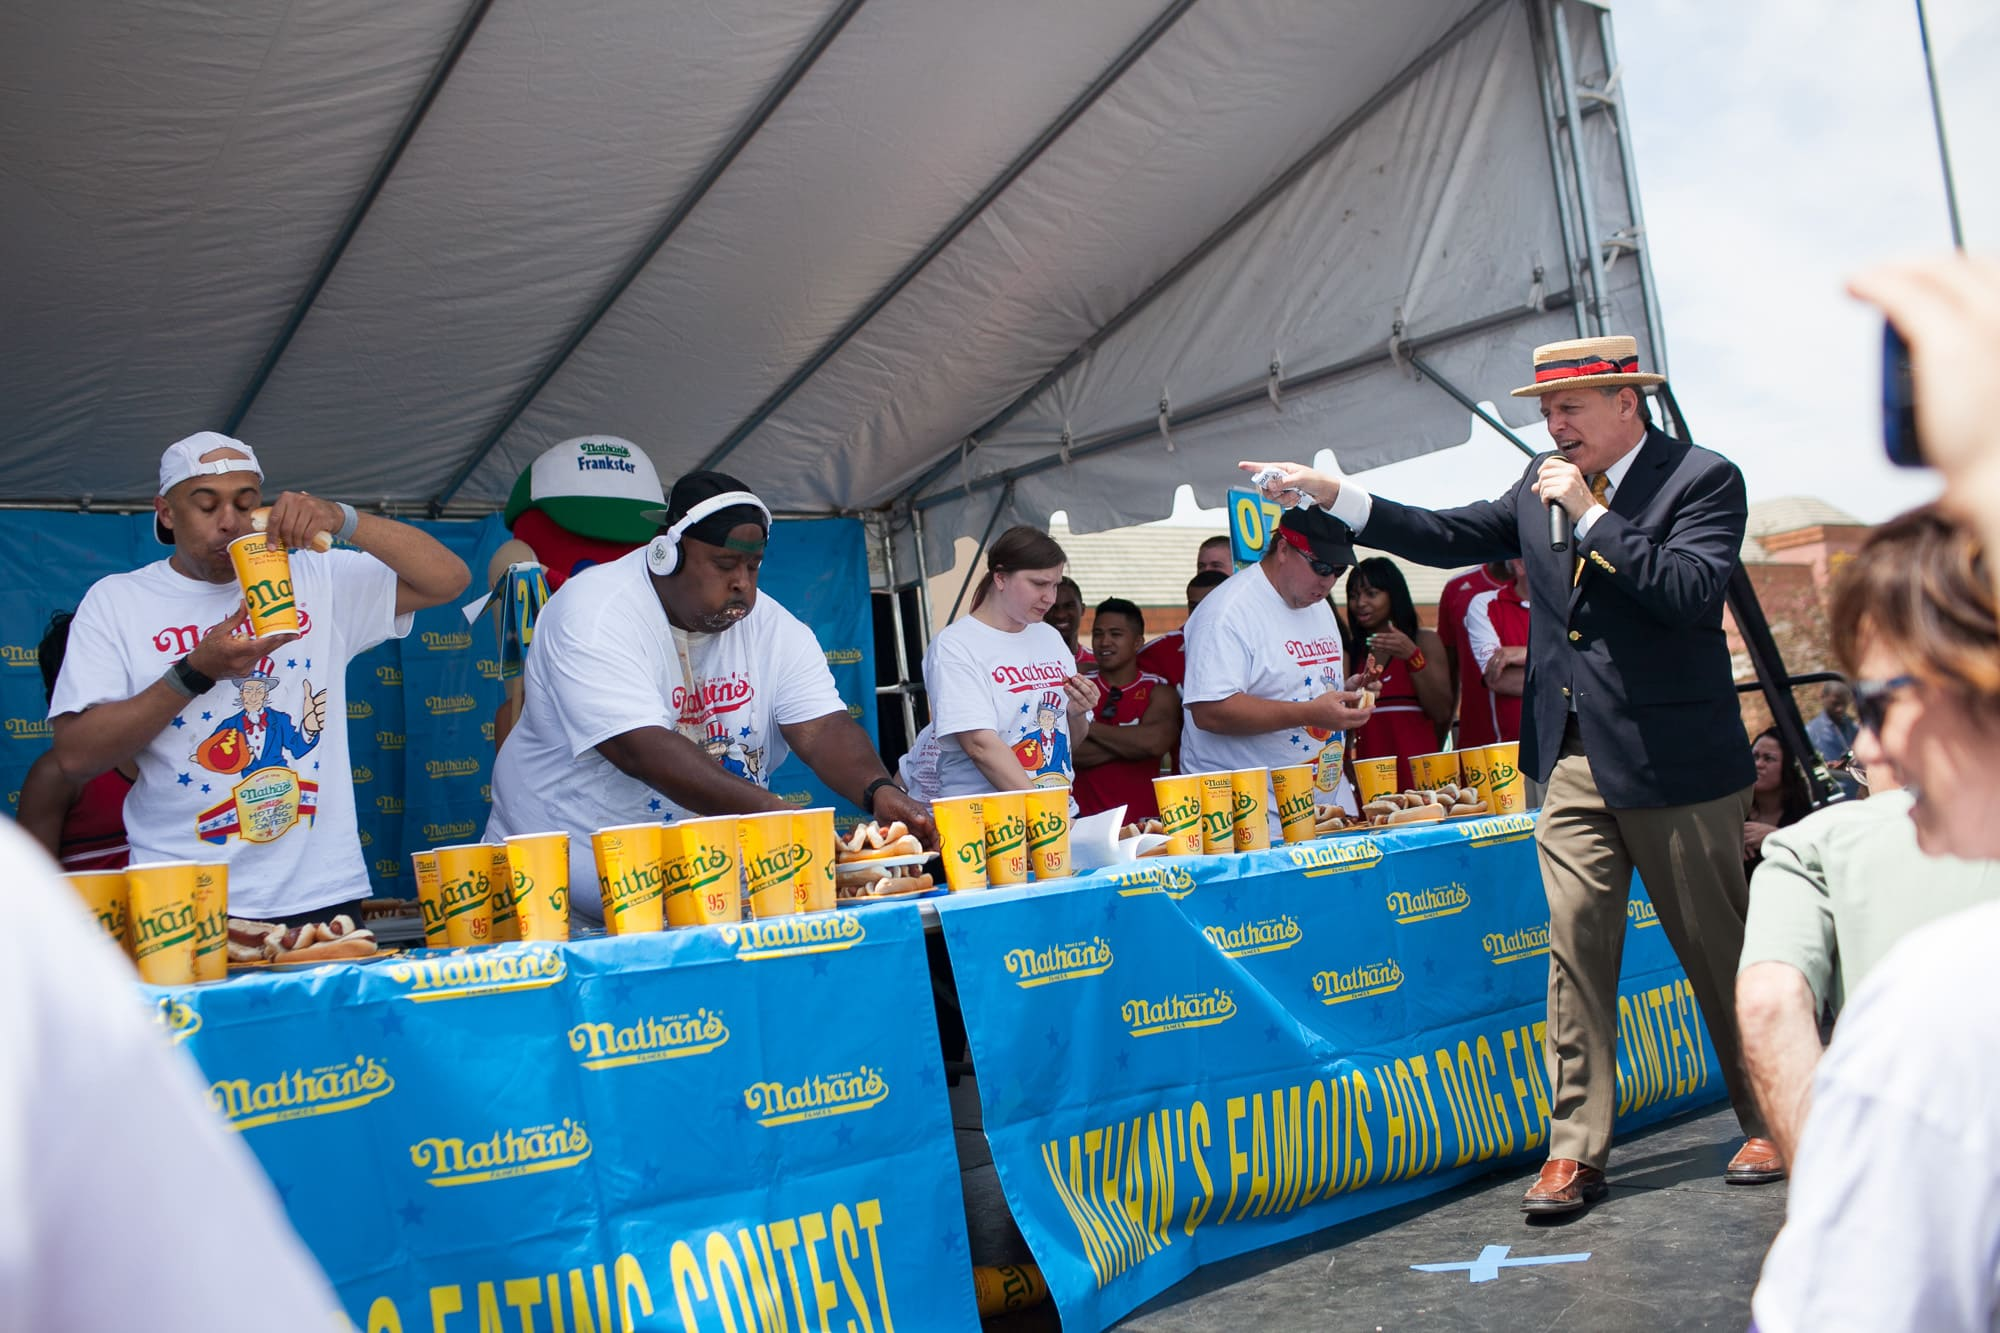 Nathan's Famous hot dog eating contest qualifier at the Bloomingdale, Illinois, Kmart